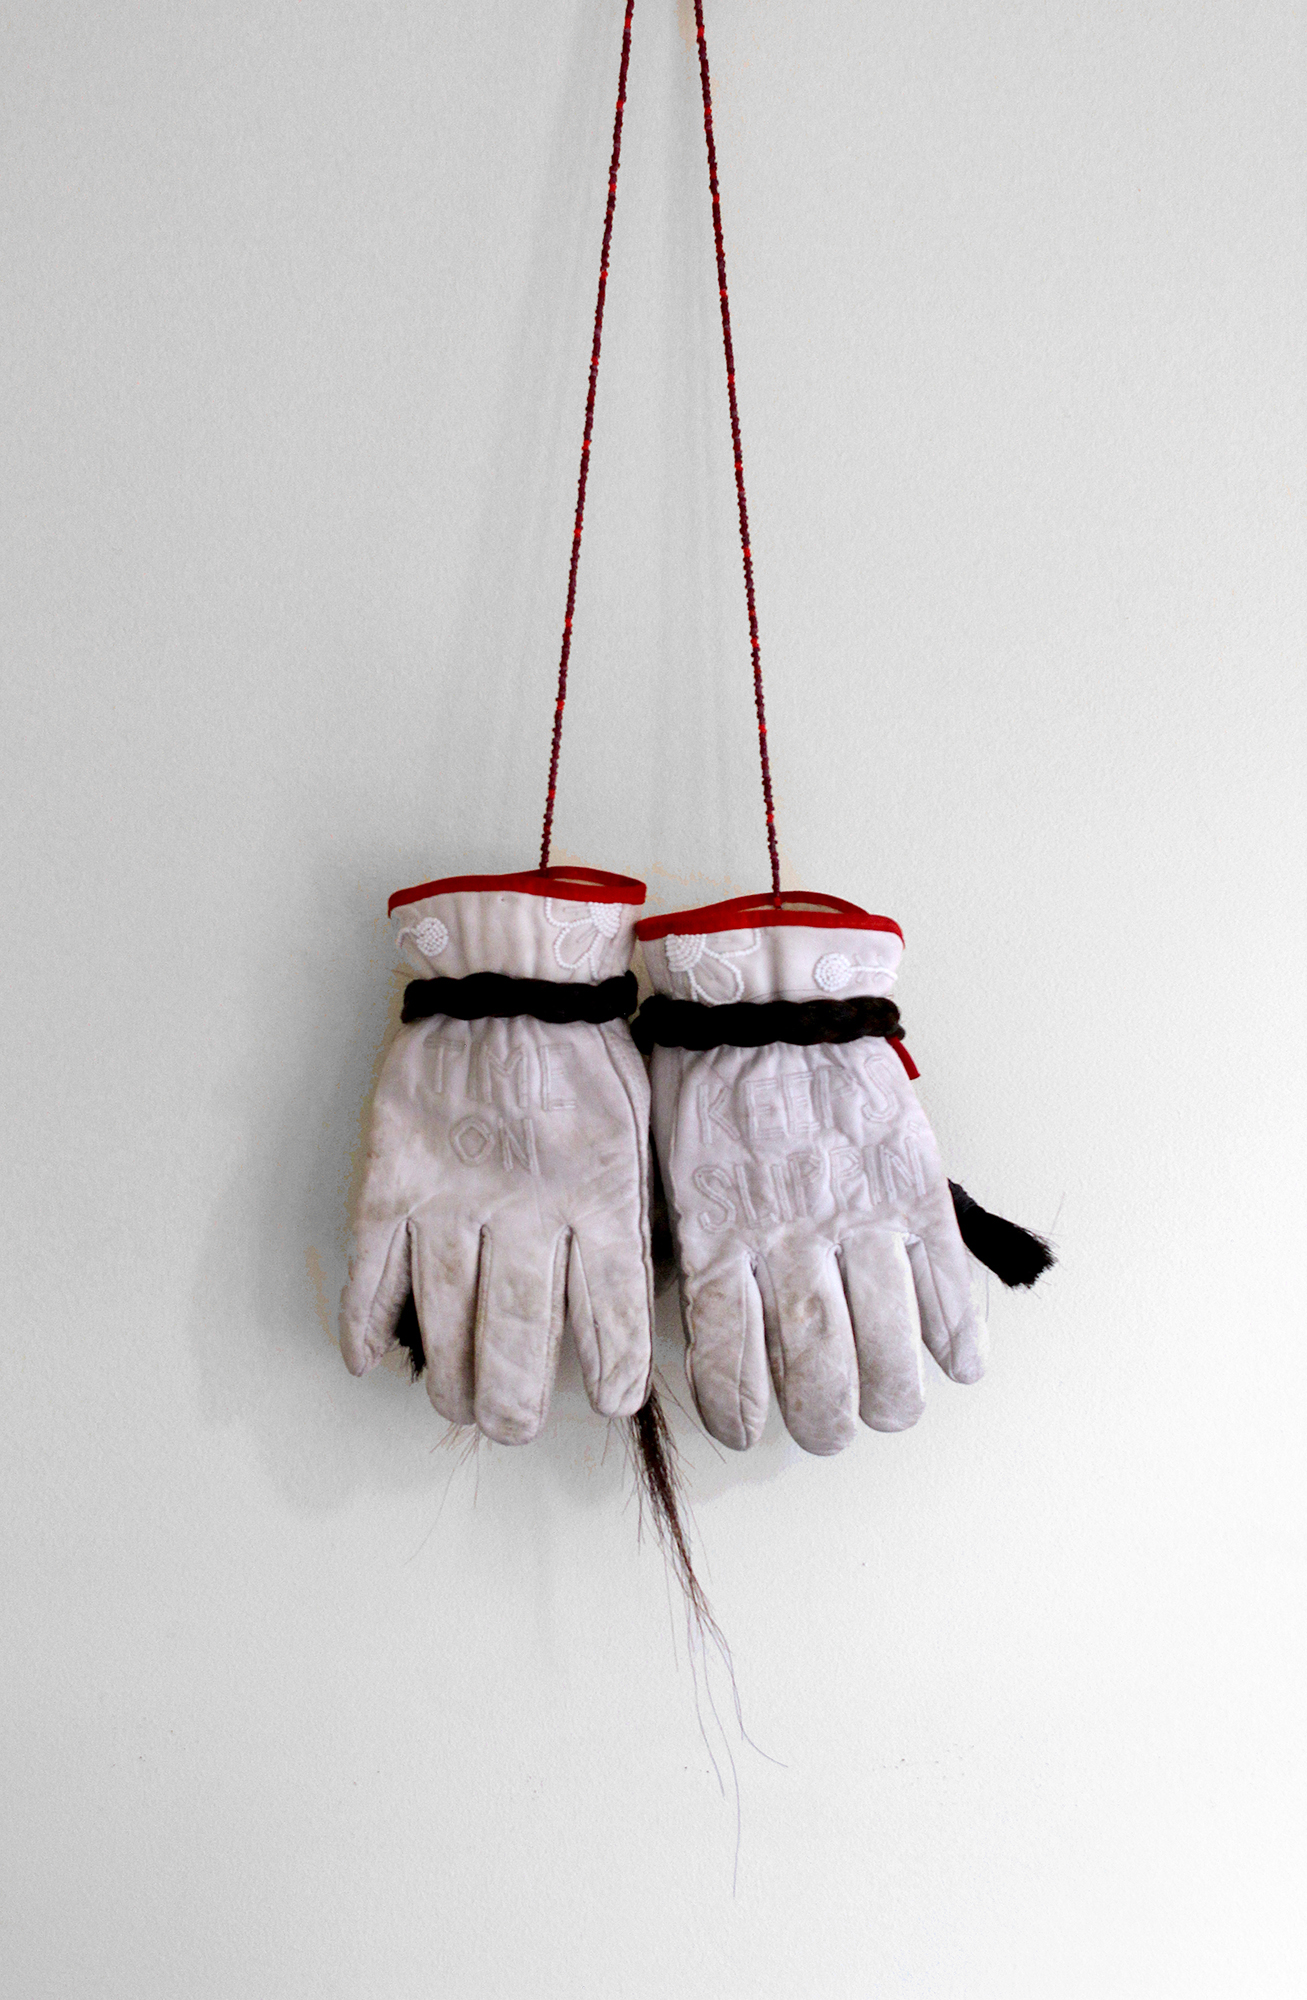 Time Gloves, 2019